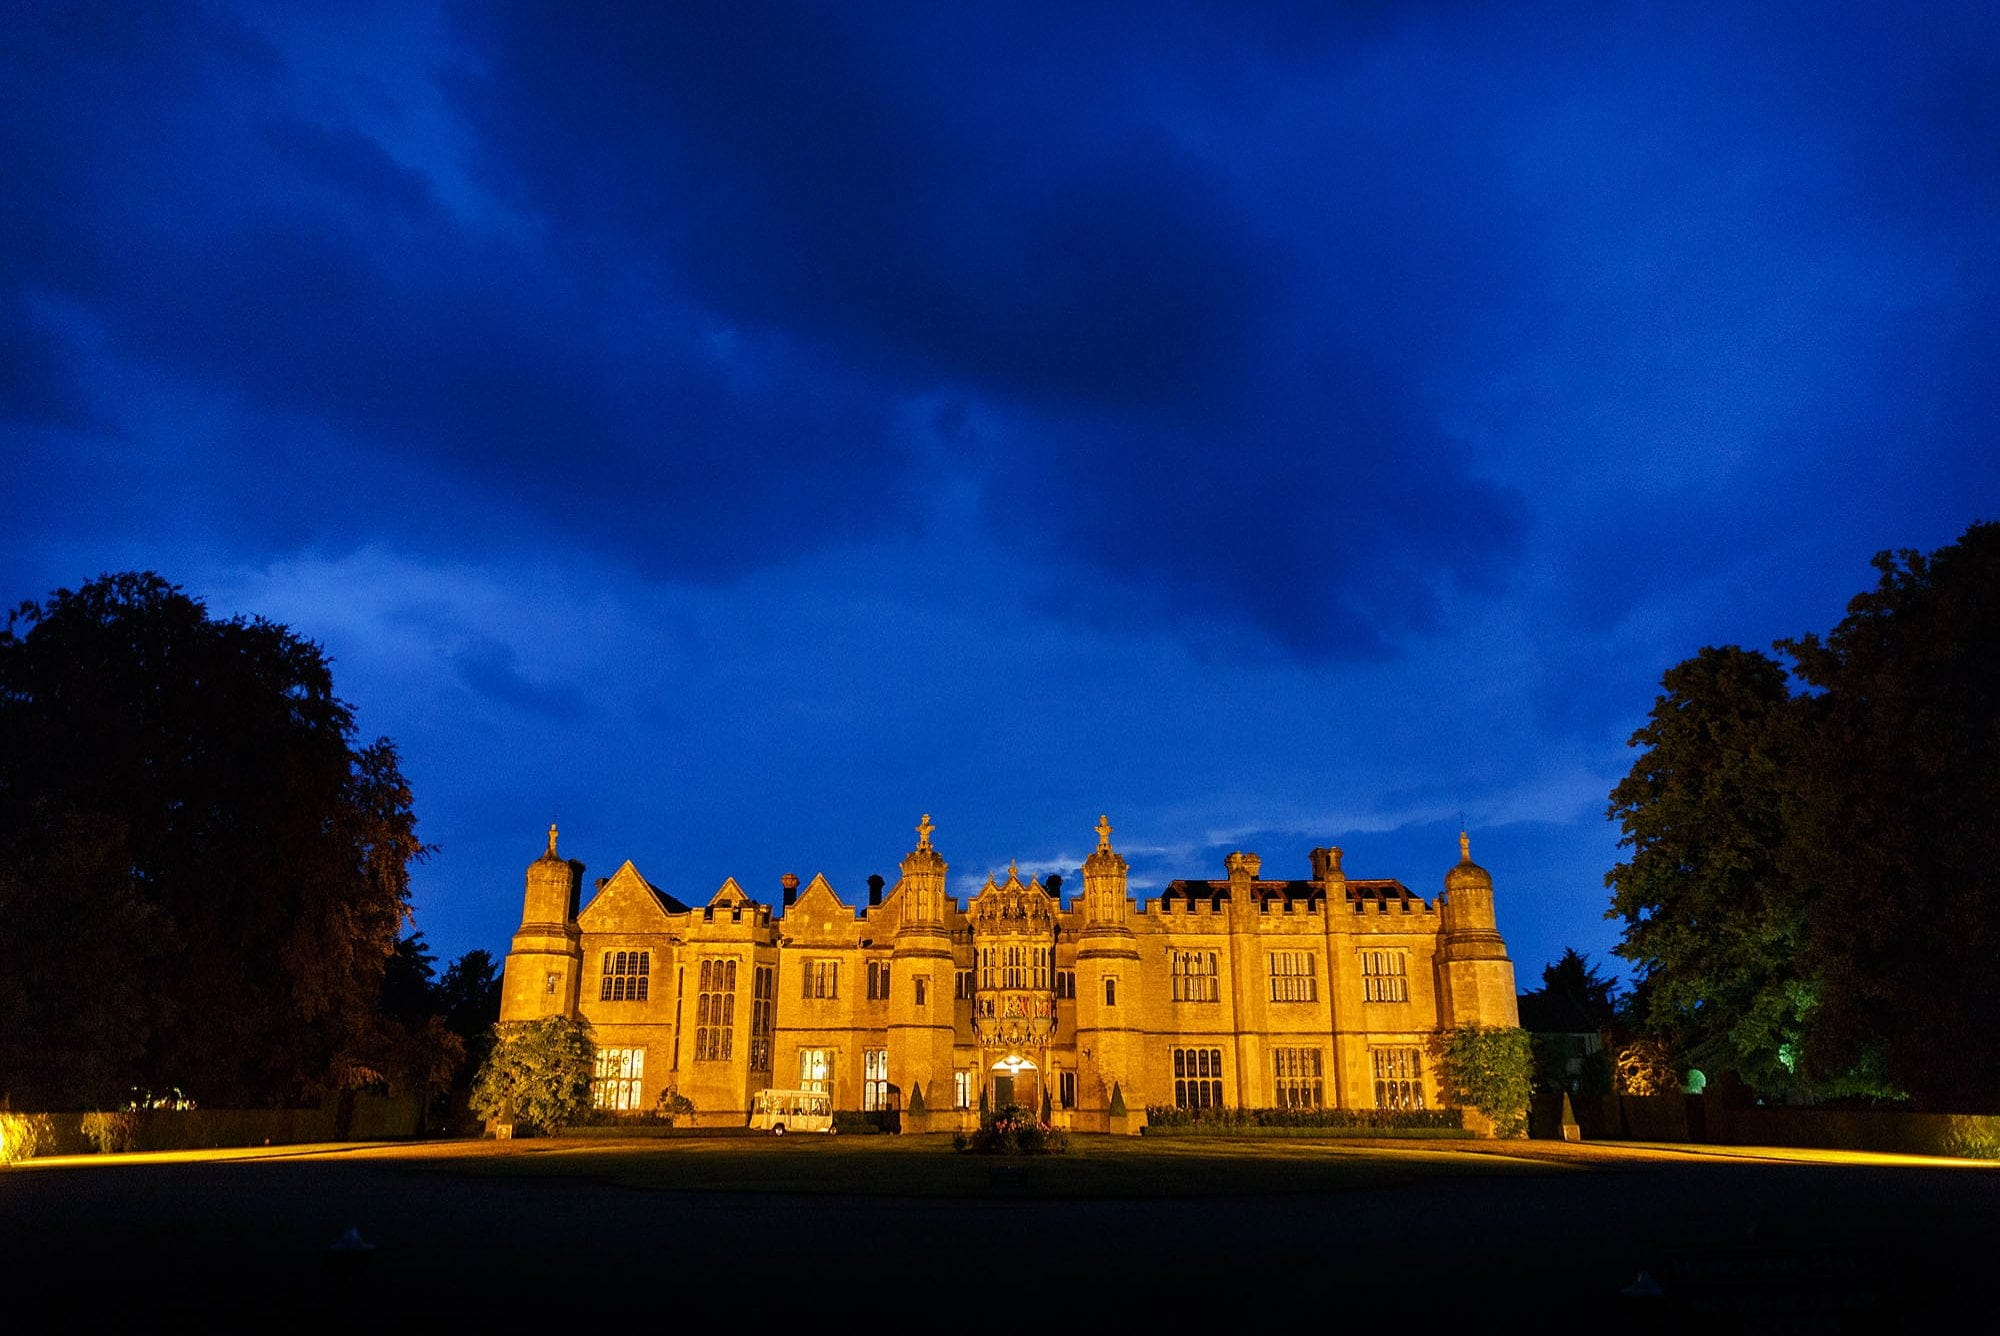 Hnegrave Hall by night